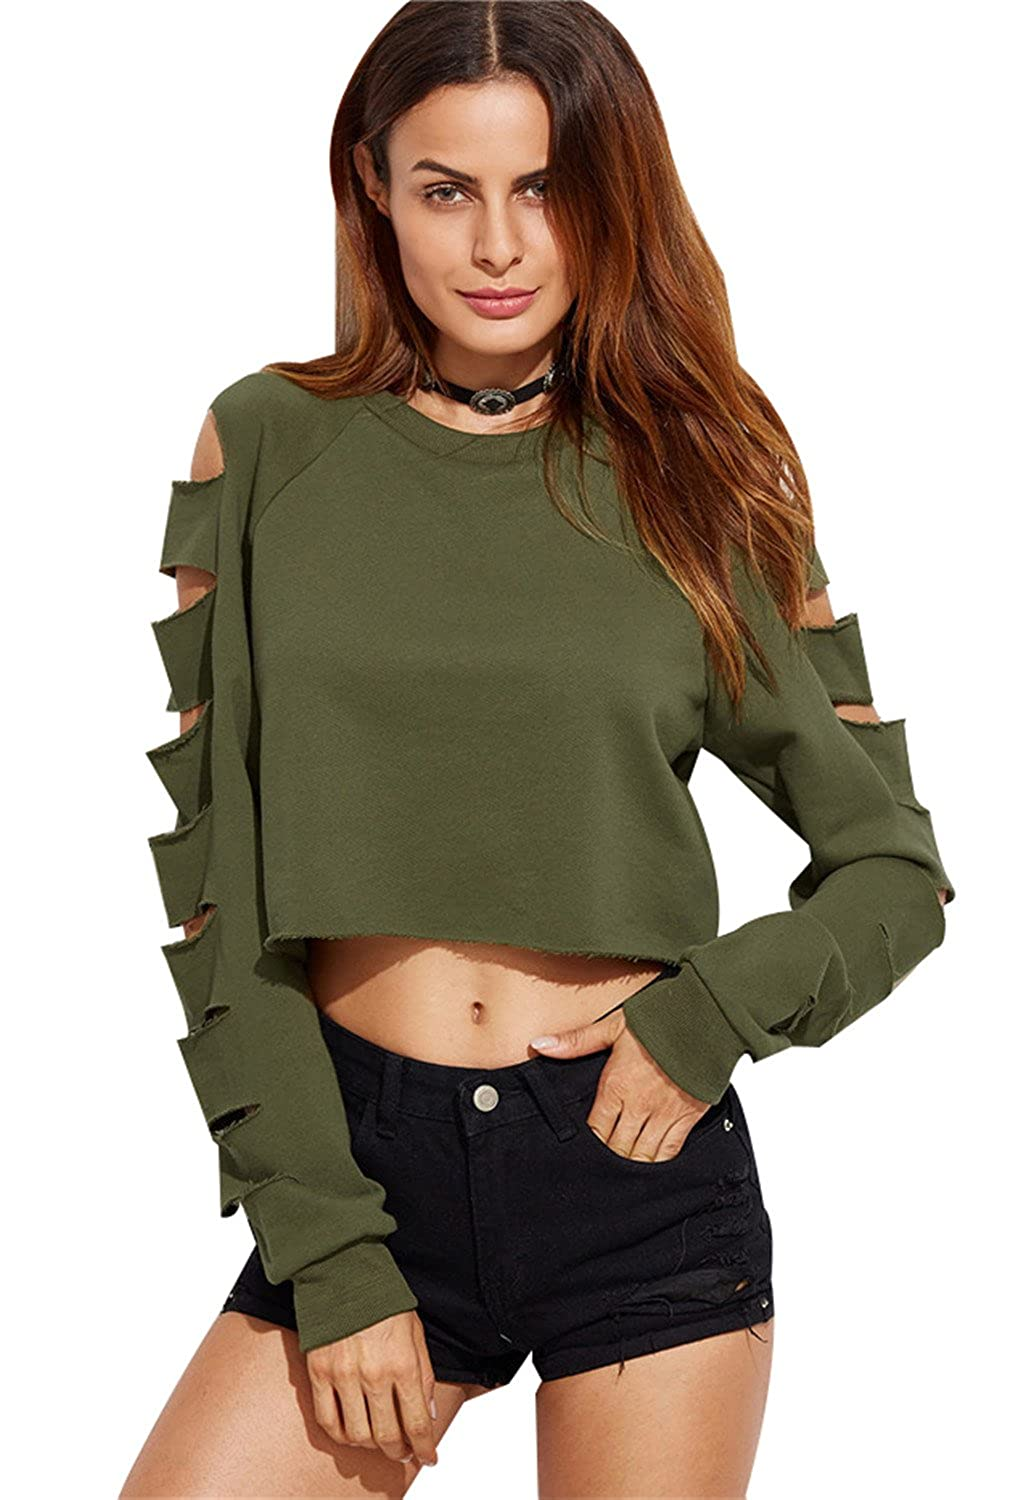 6a1cbc2f Top1: Arctic Cubic Sexy Cold Open Shoulder Distressed Ladder Cut Out Hole  Holes Cropped Crop Sweatshirt T-Shirt Boxy Top